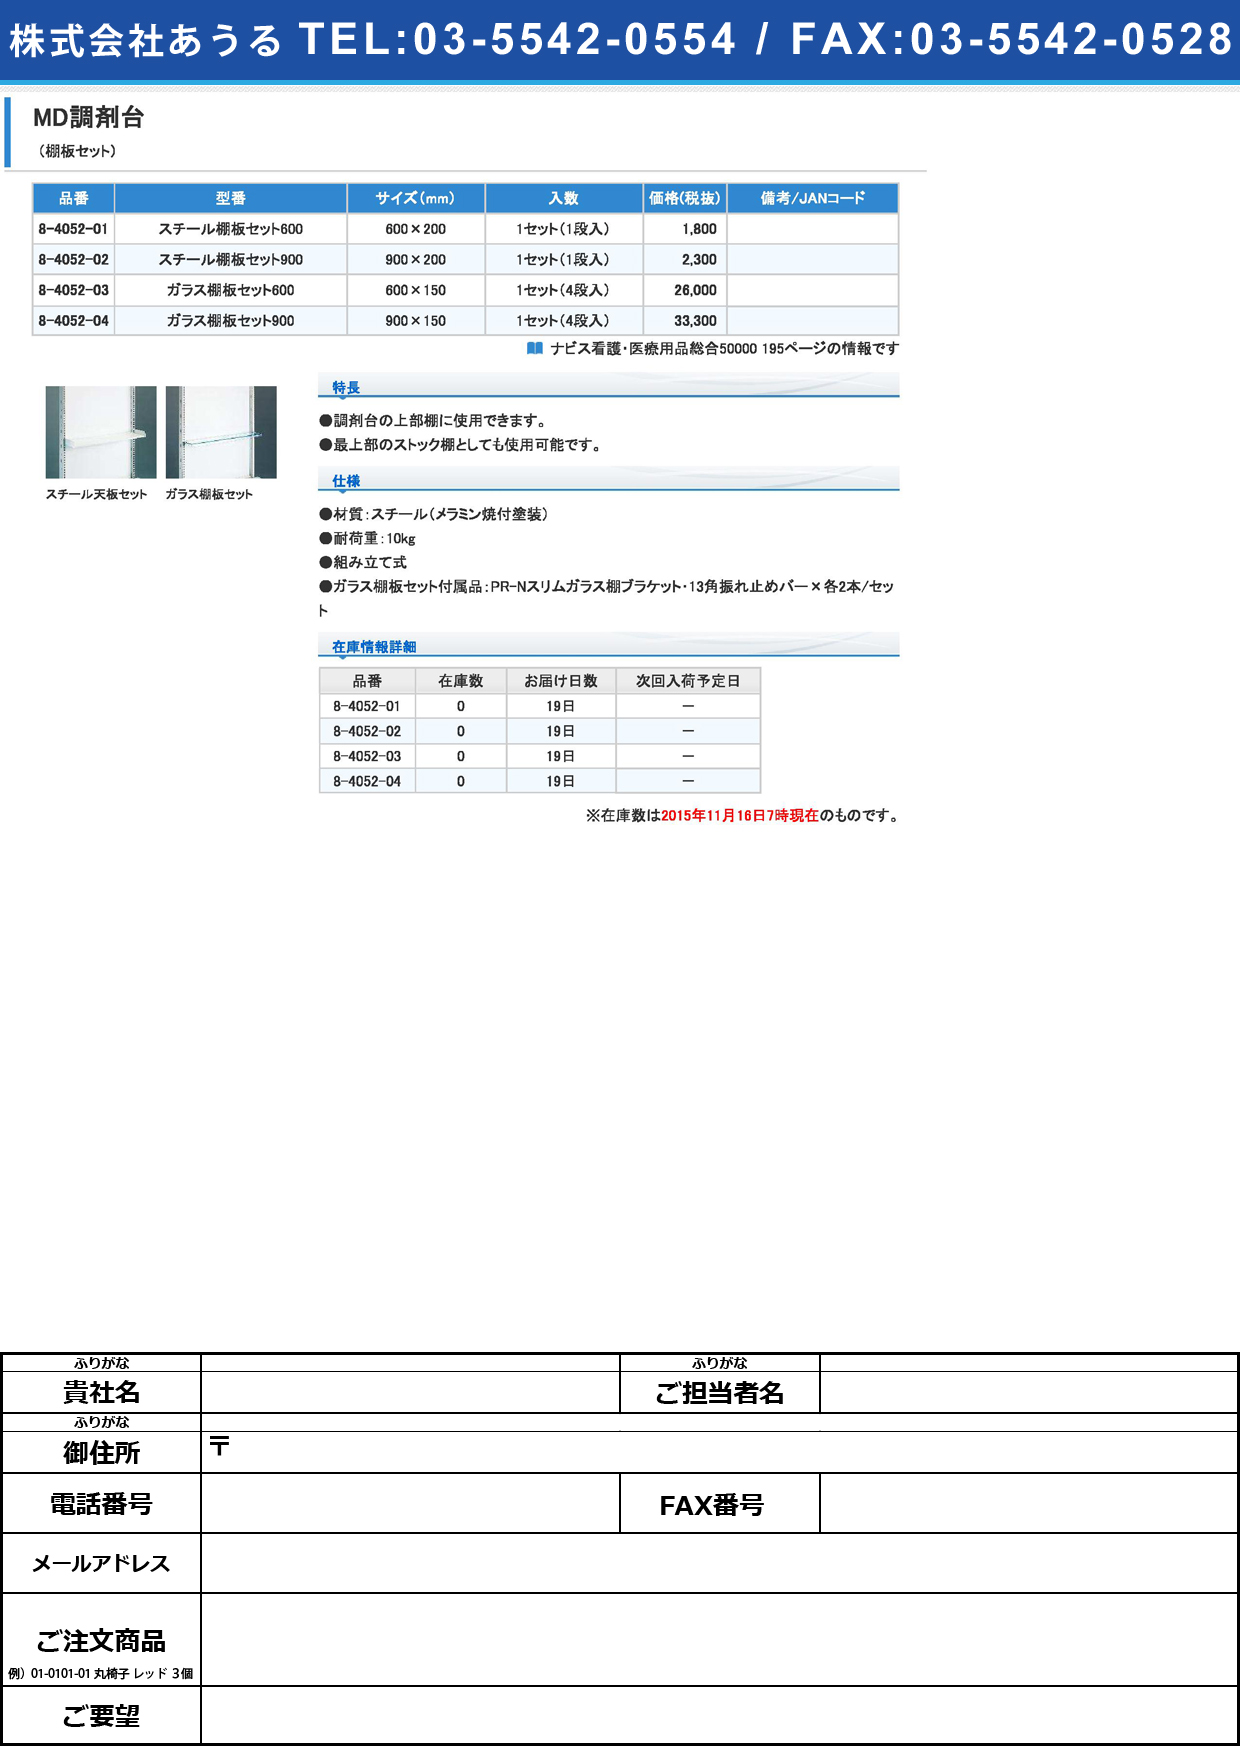 8-4052-02 MD調剤台 スチール棚板セット 900×200mm[個](as1-8-4052-02)